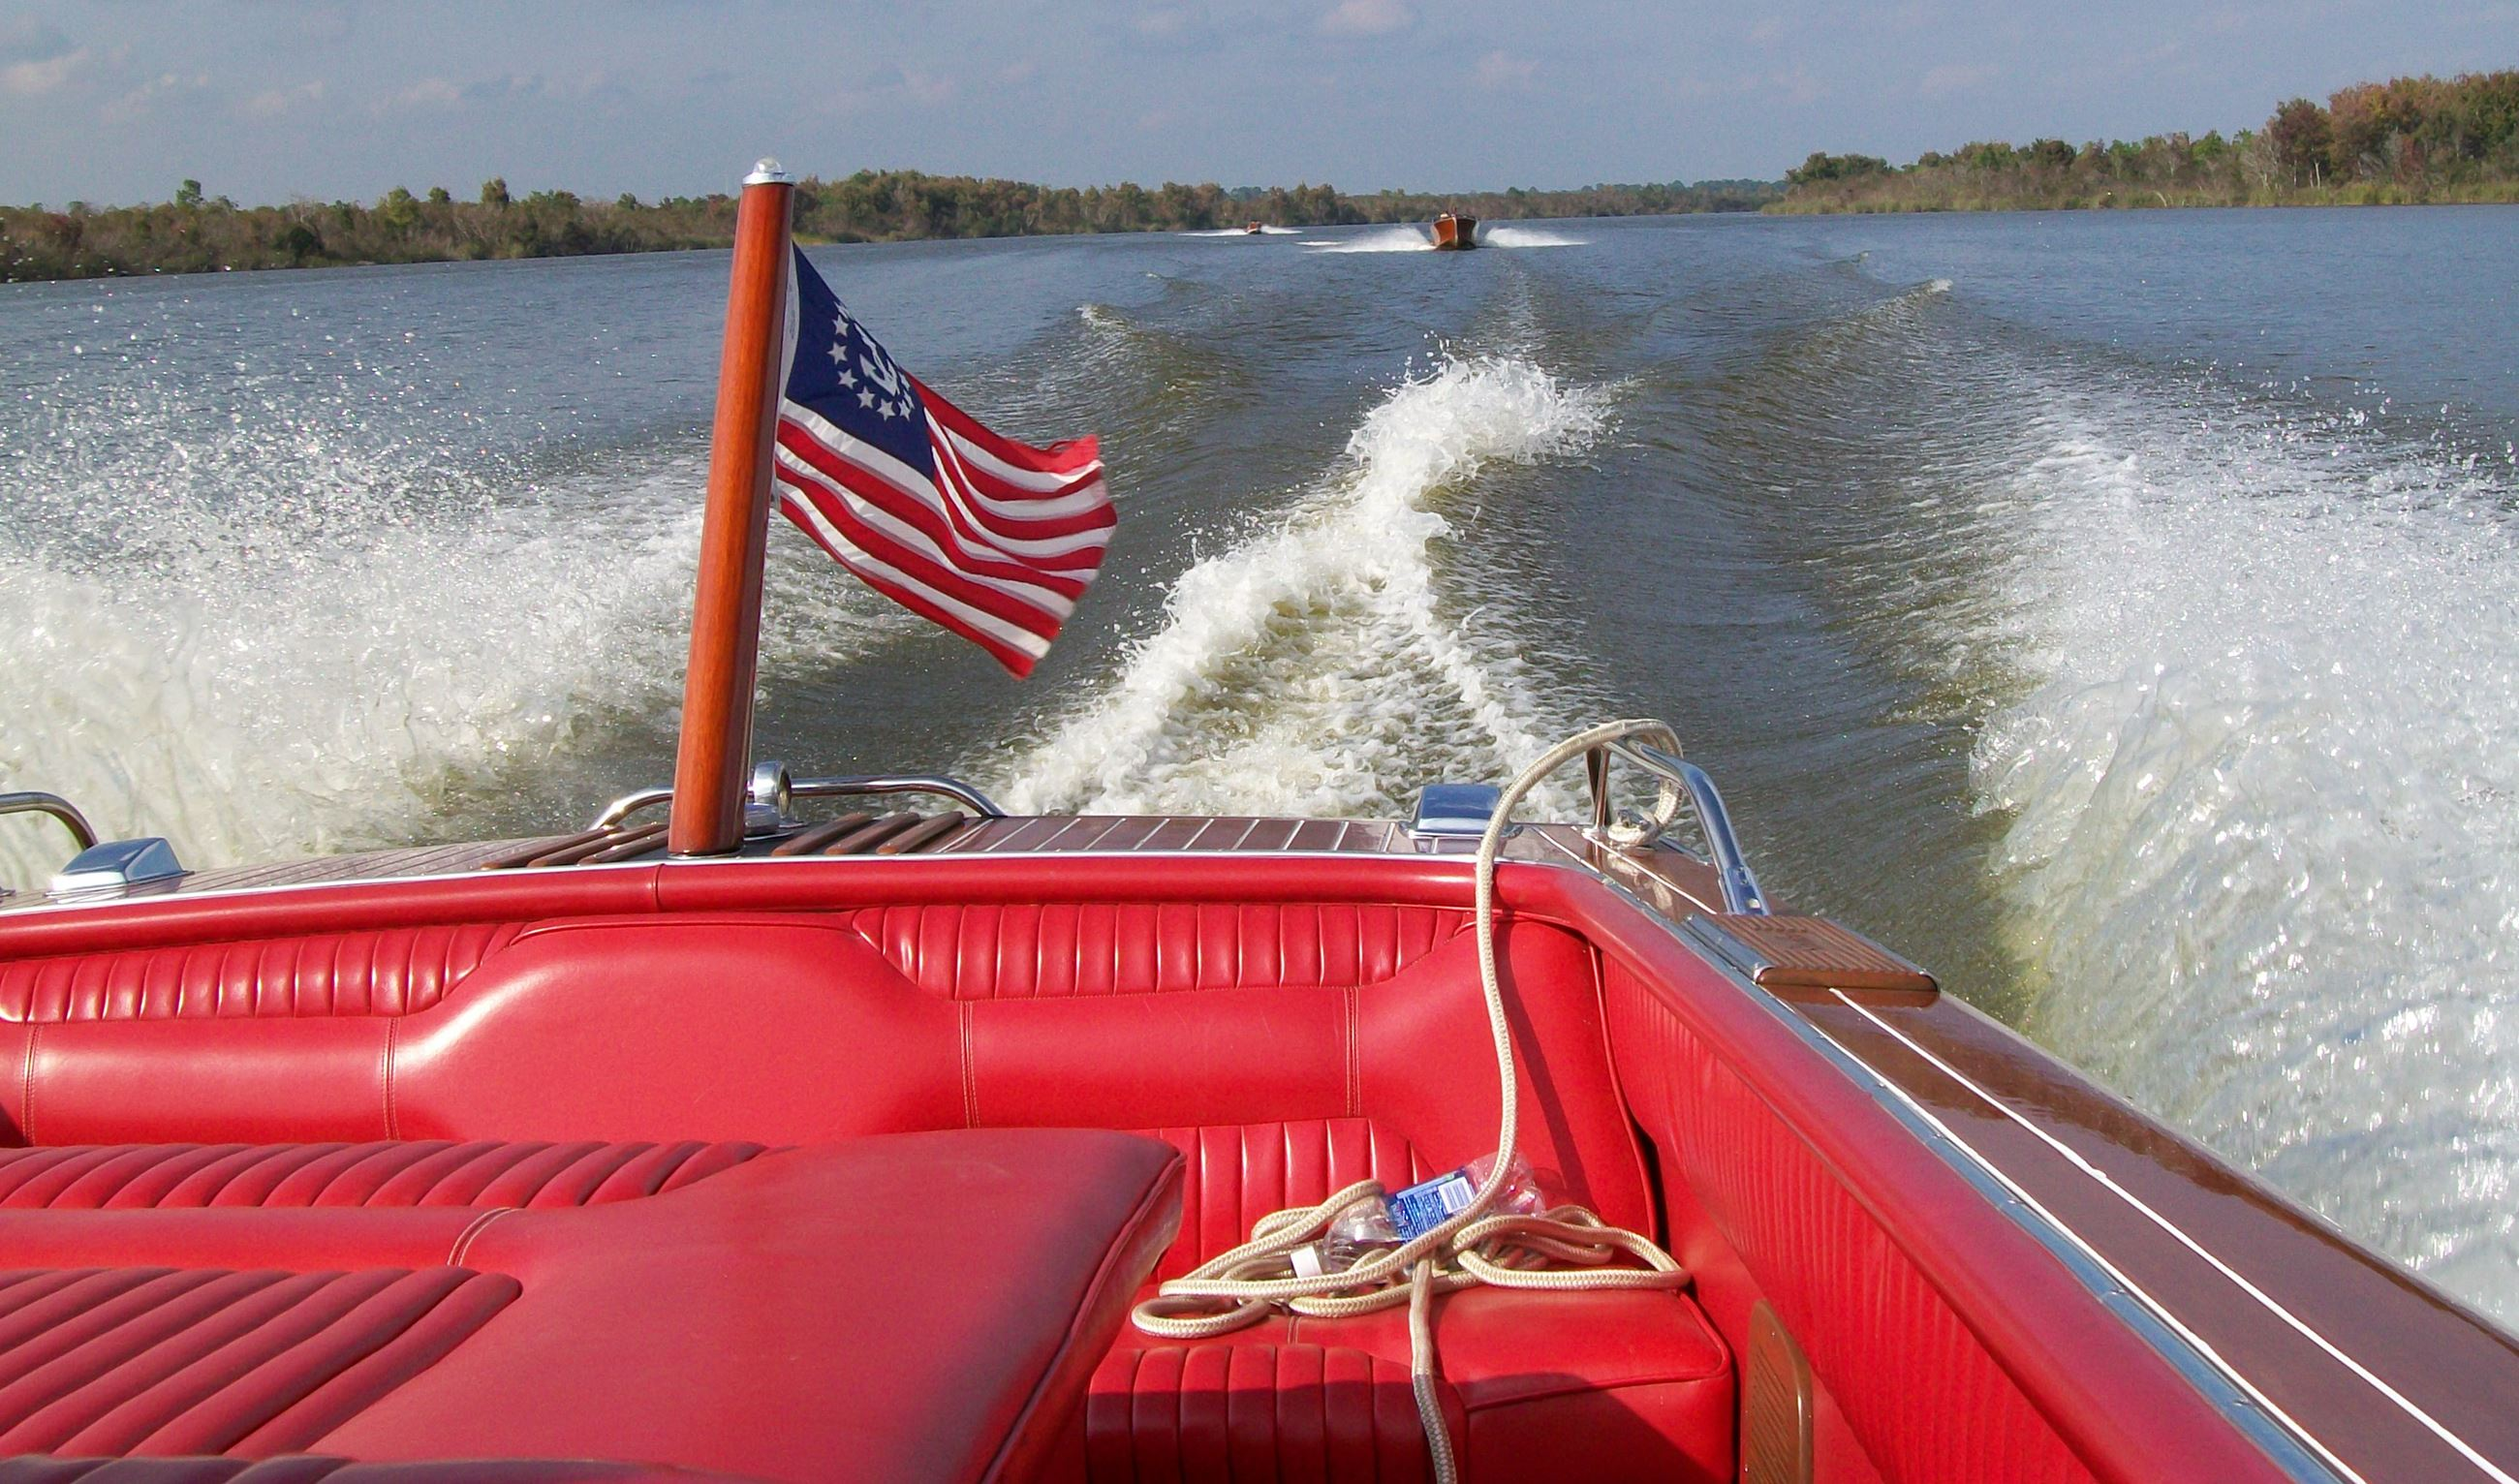 Image of Antique Boat and American Flag Boating in Lake Dora